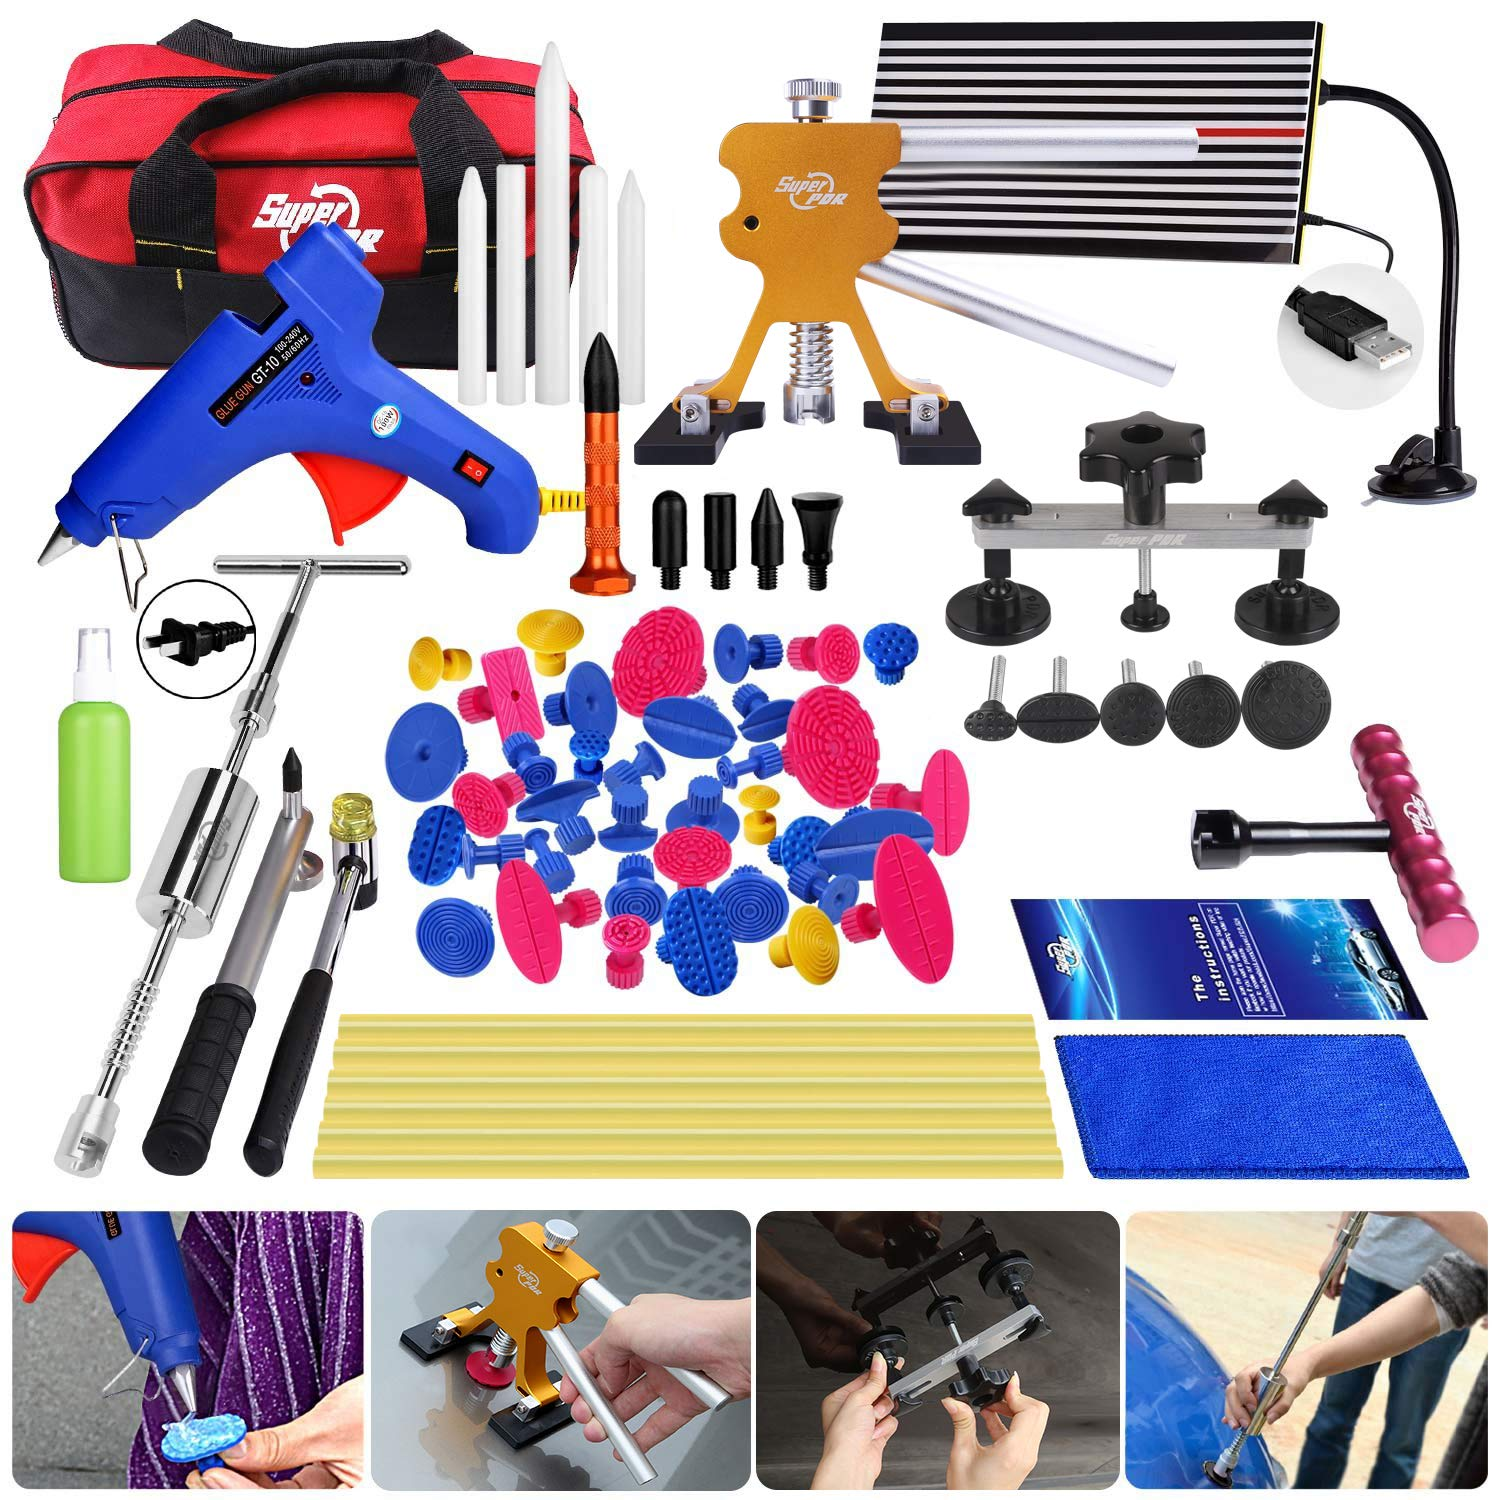 Super PDR 68pcs Auto Body Paintless Dent Removal Repair Tools Kits Dent Lifter Slide Hammer Pro Tabs Tap Down LED Reflector Board with Tool Bag